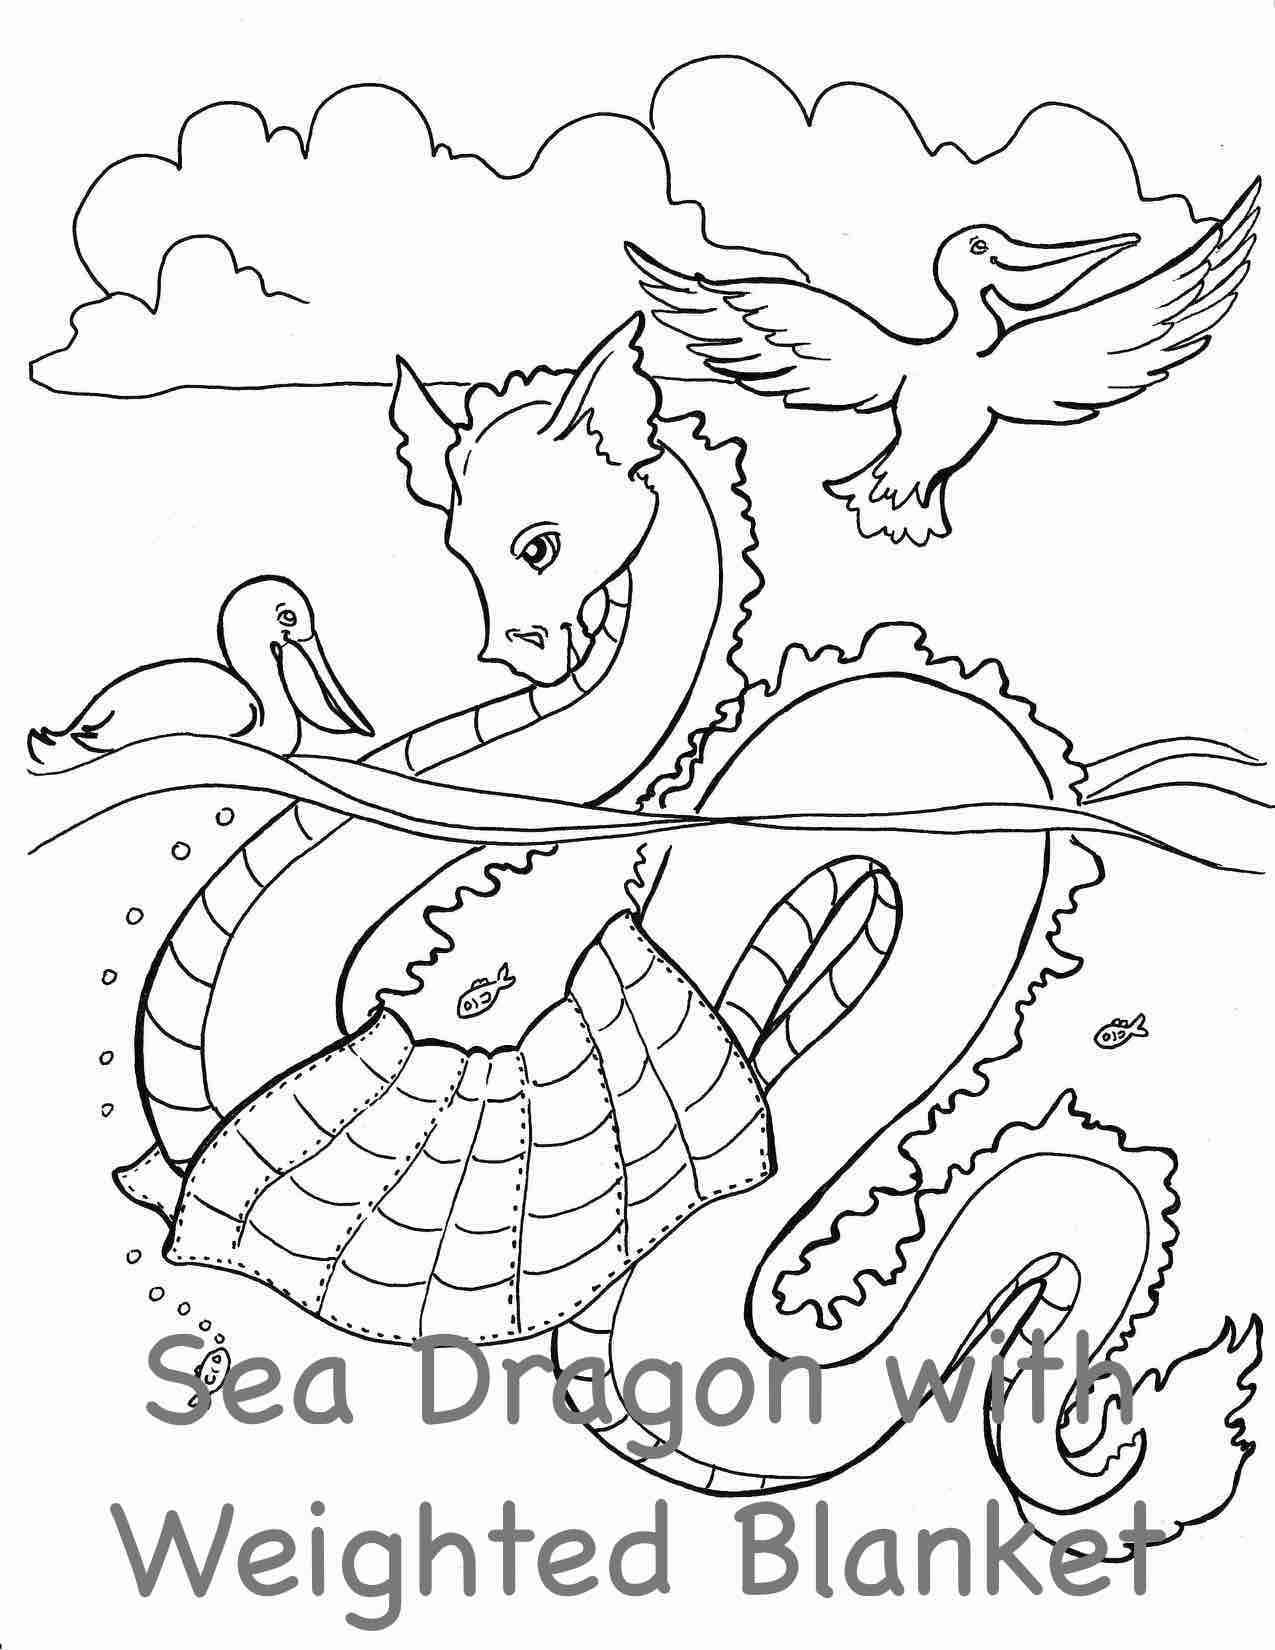 ocean dragon coloring pages - photo#48